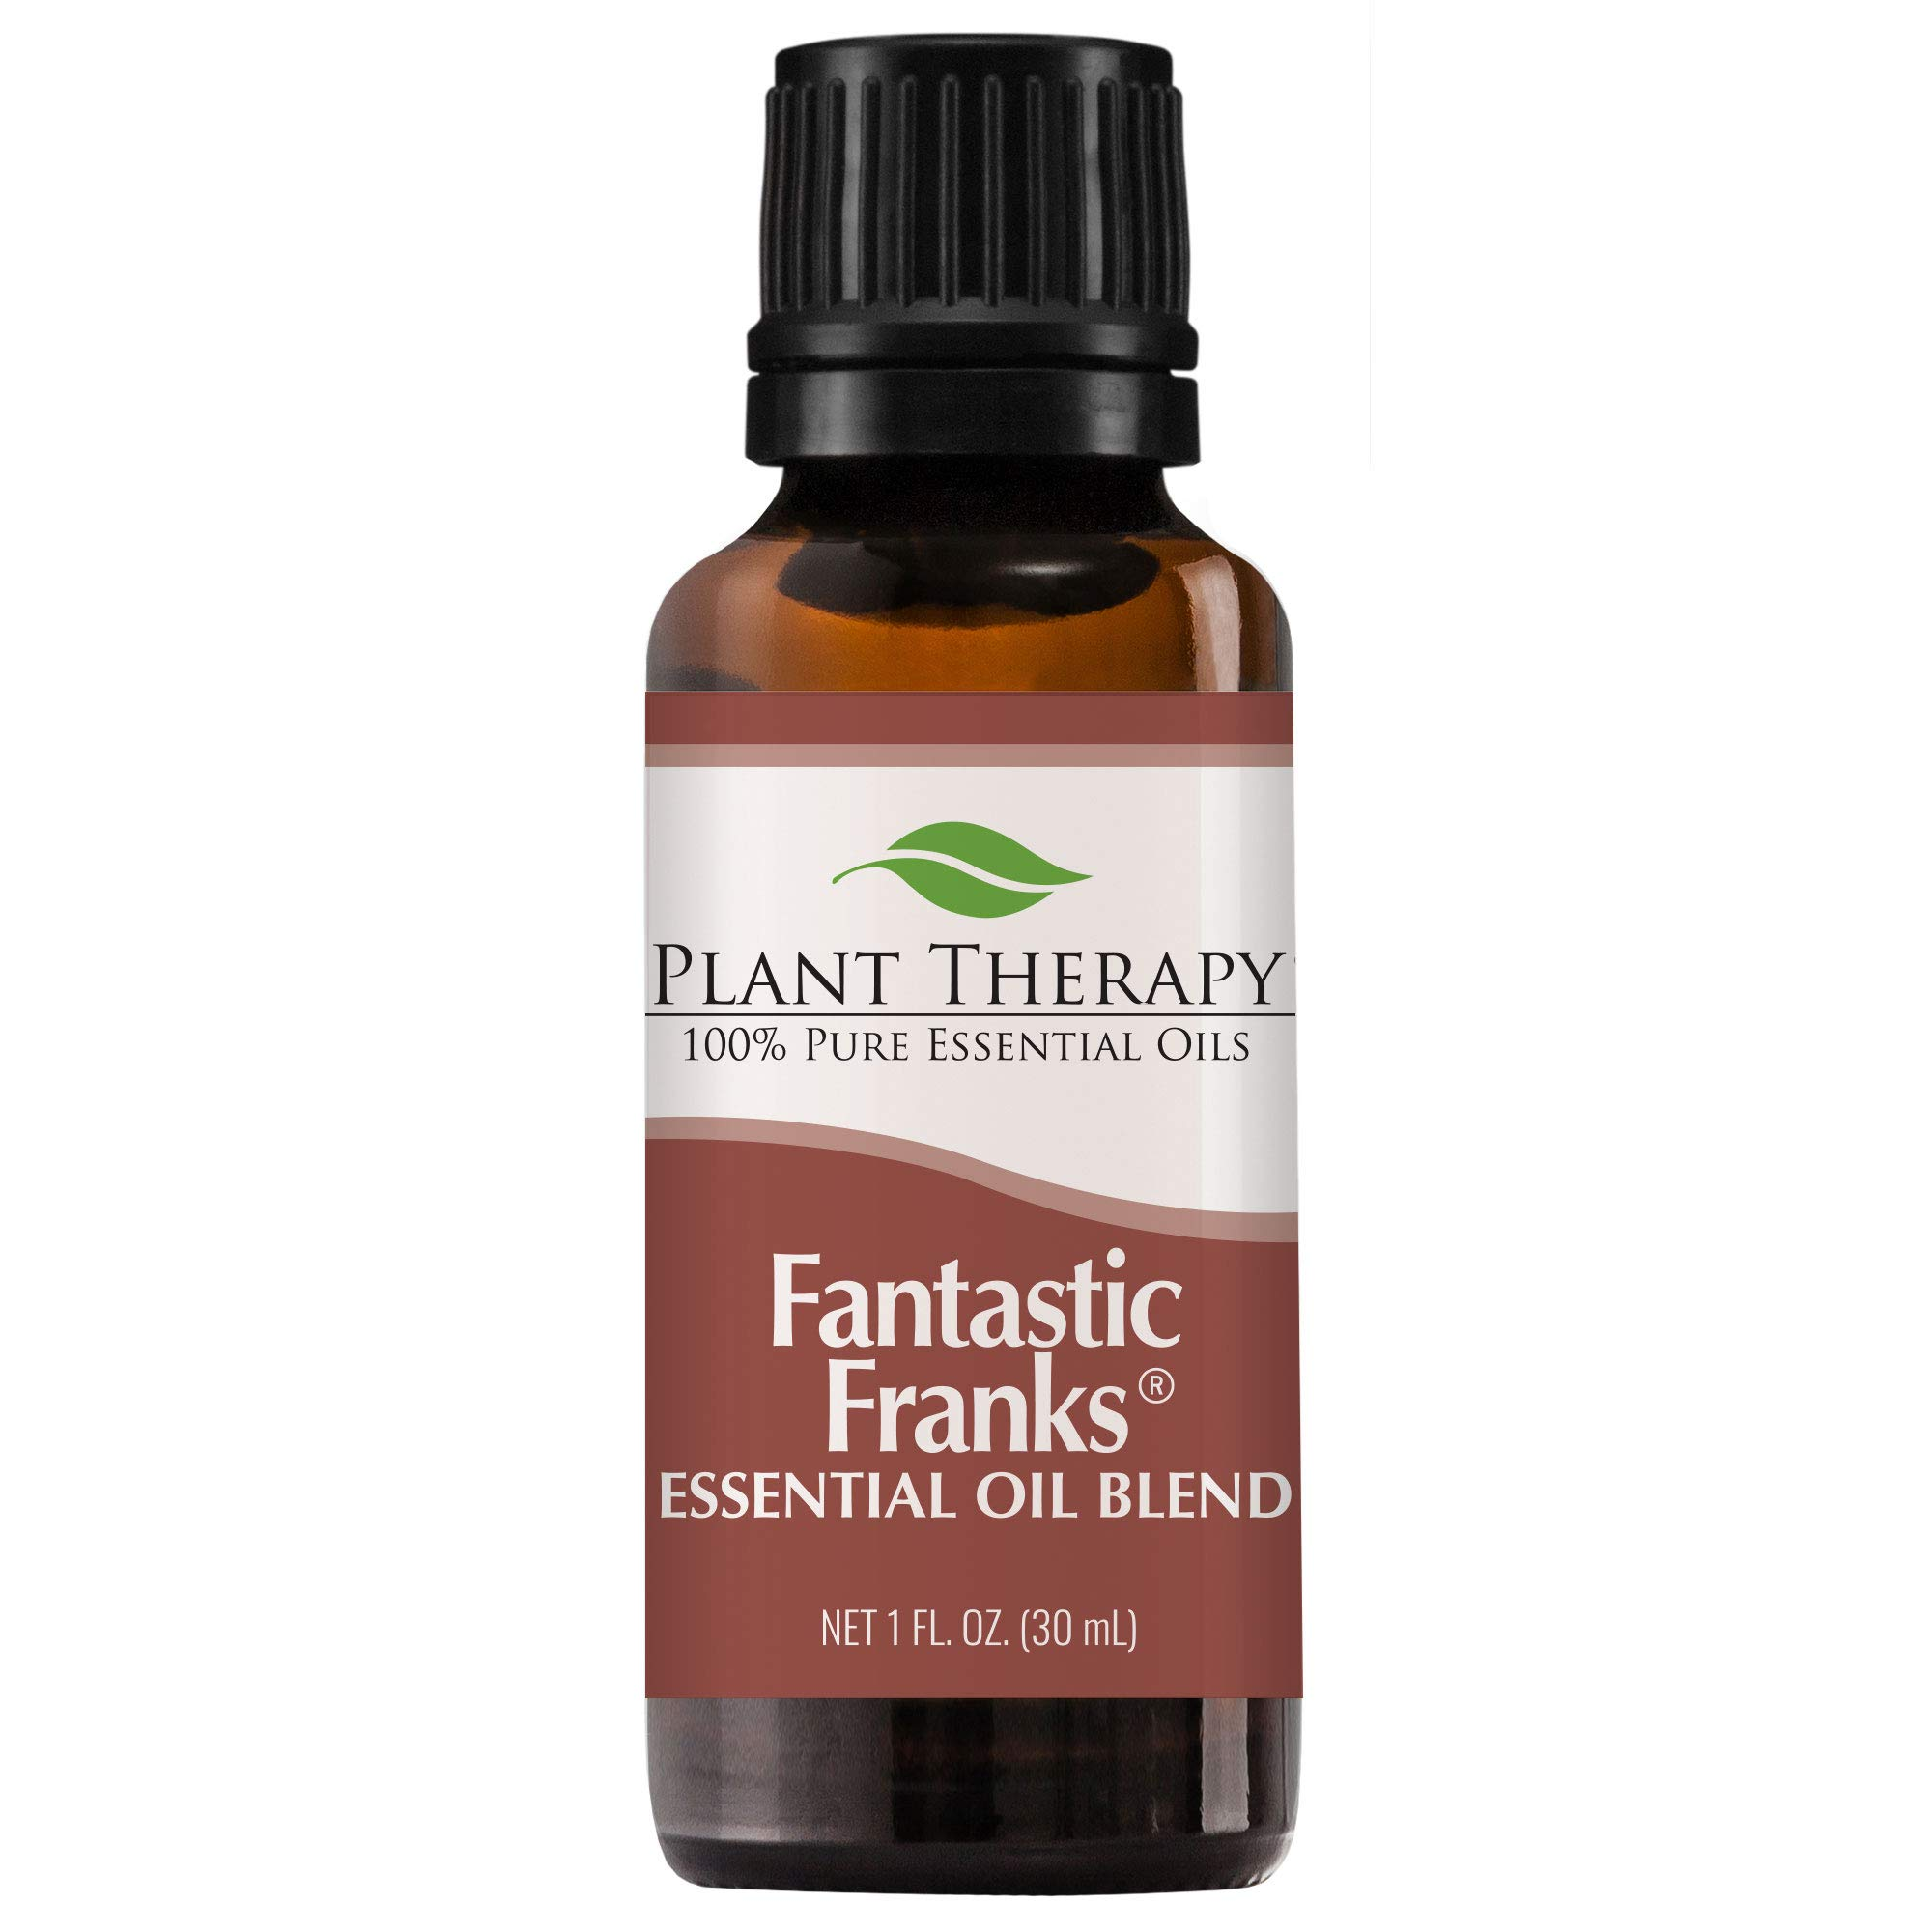 Plant Therapy Fantastic Franks Essential Oil Blend 30 mL (1 oz) 100% Pure, Undiluted, Therapeutic Grade by Plant Therapy